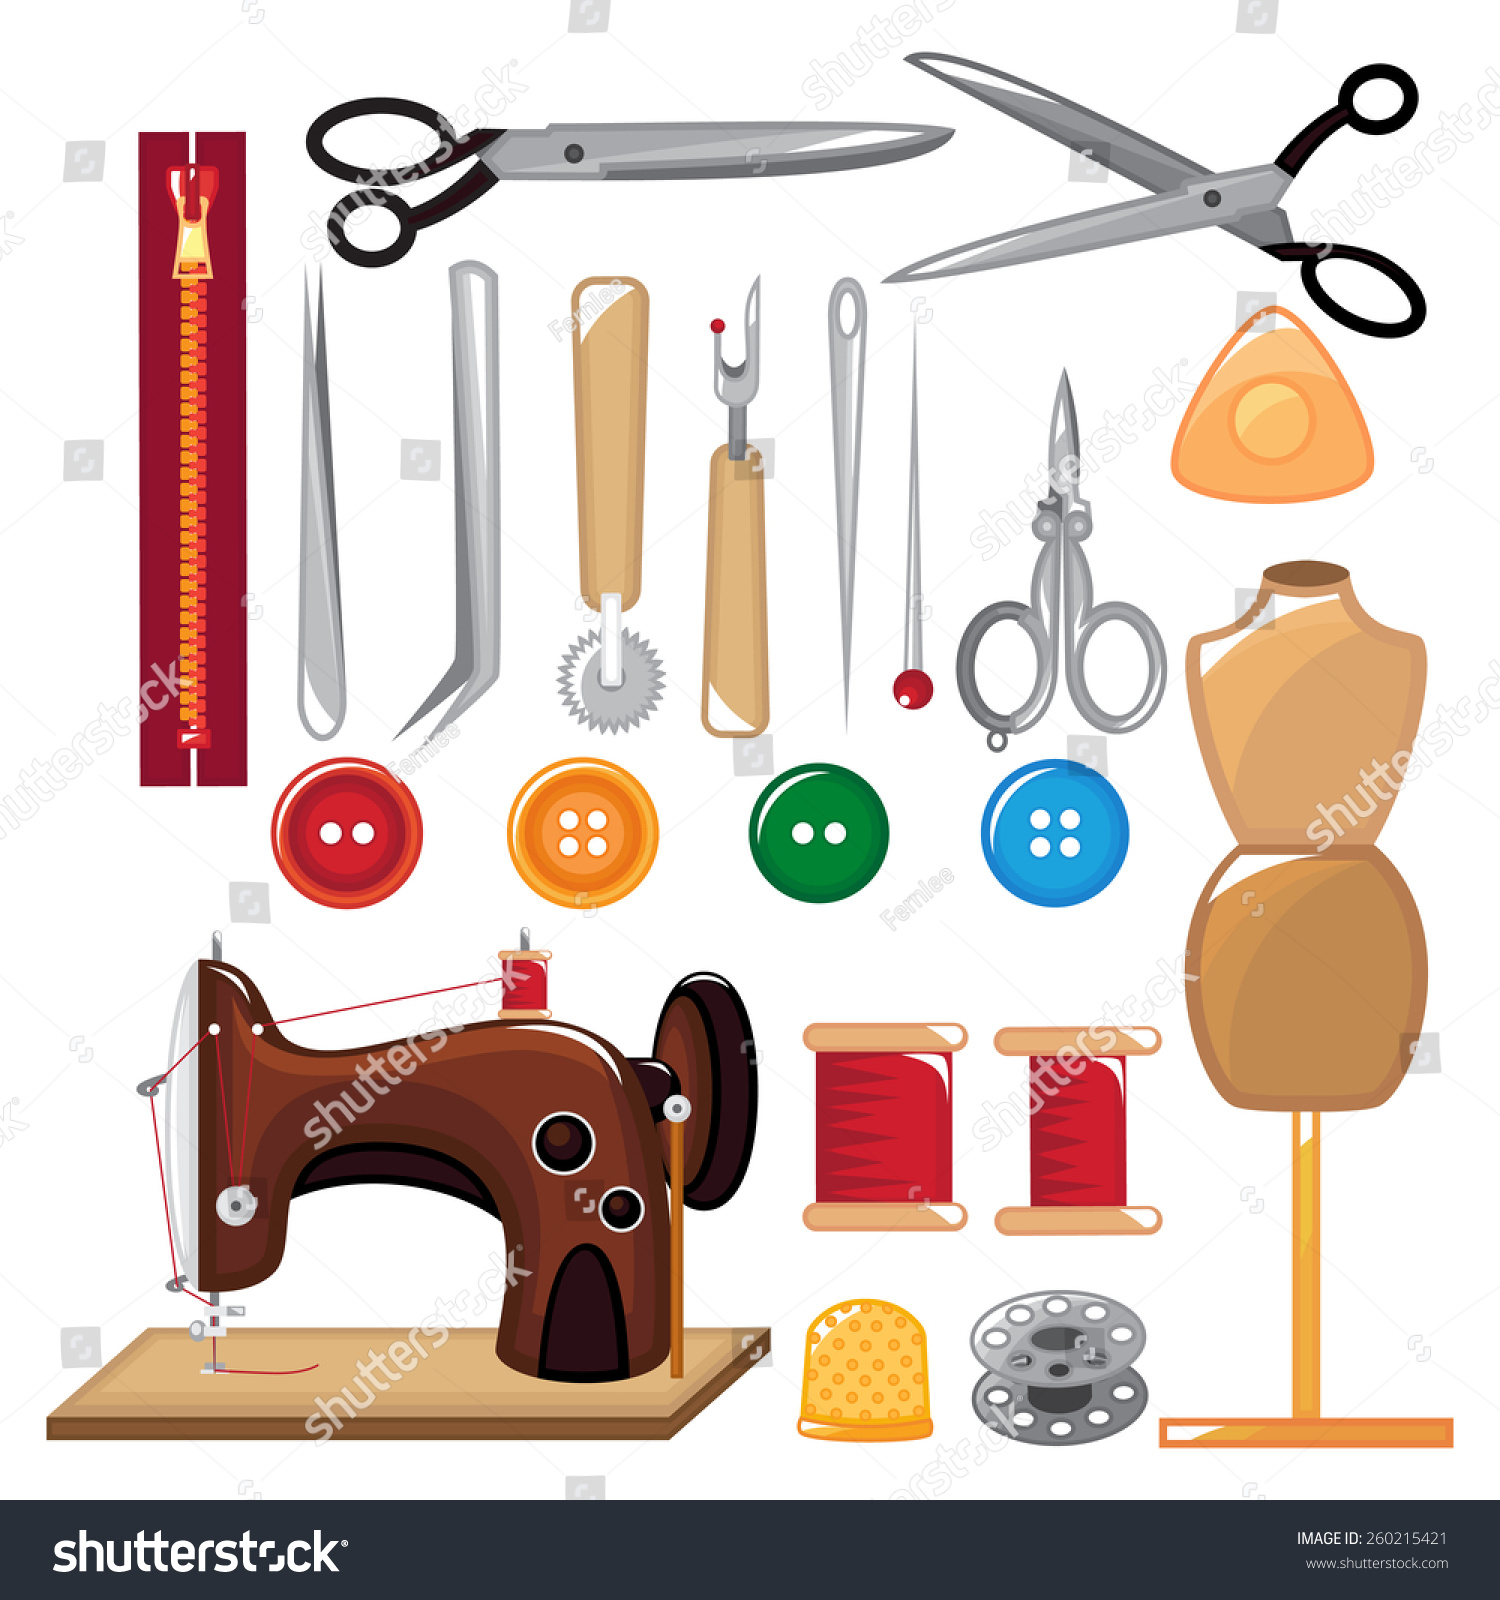 Image Gallery Sewing Equipment